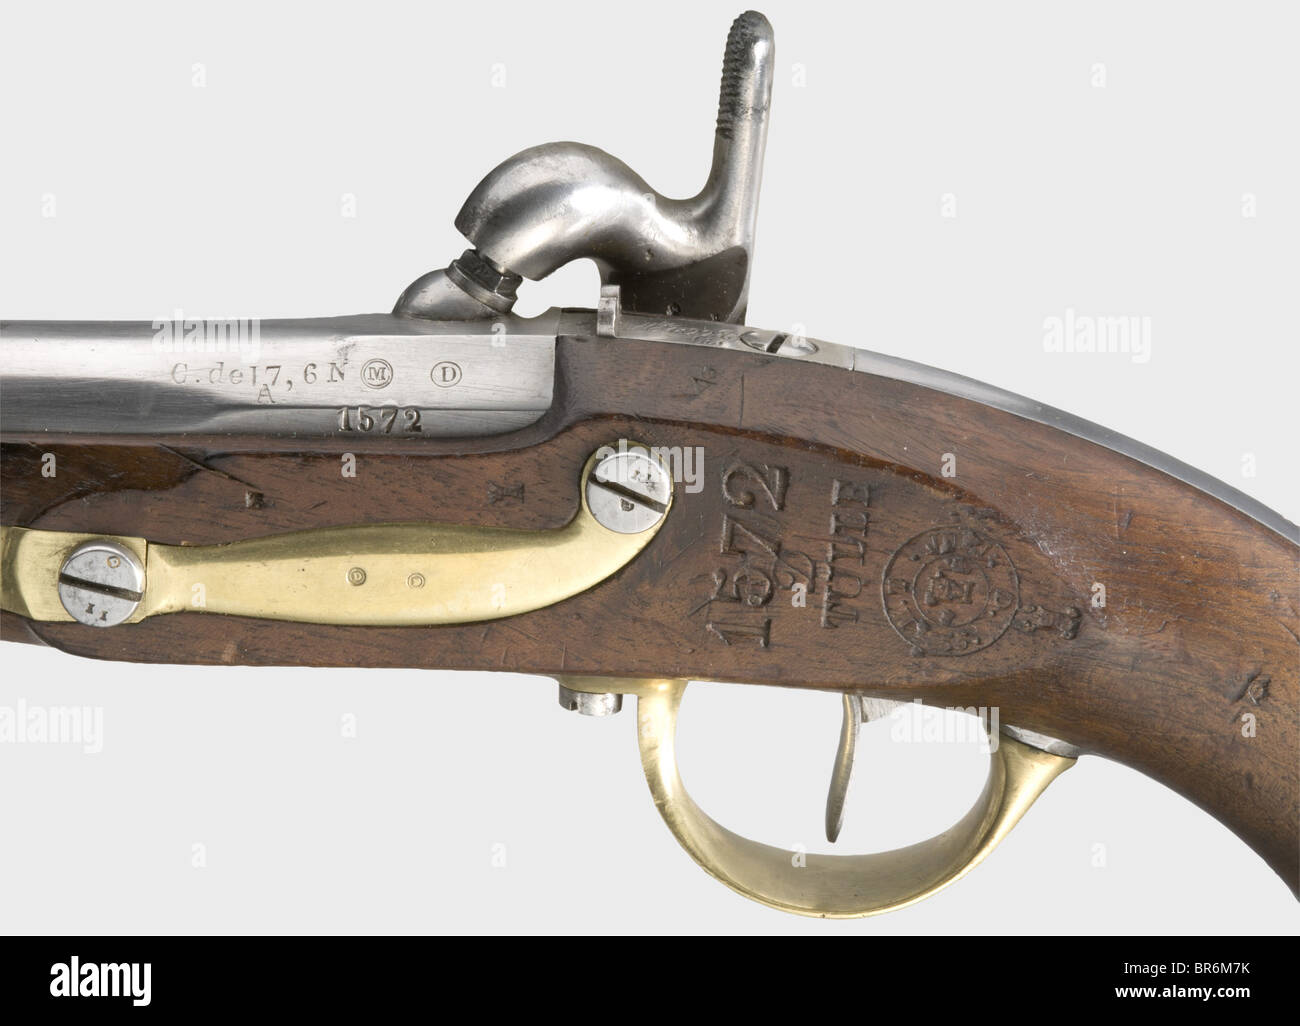 Ramrod for French percussion pistol 1822 bis American civil war